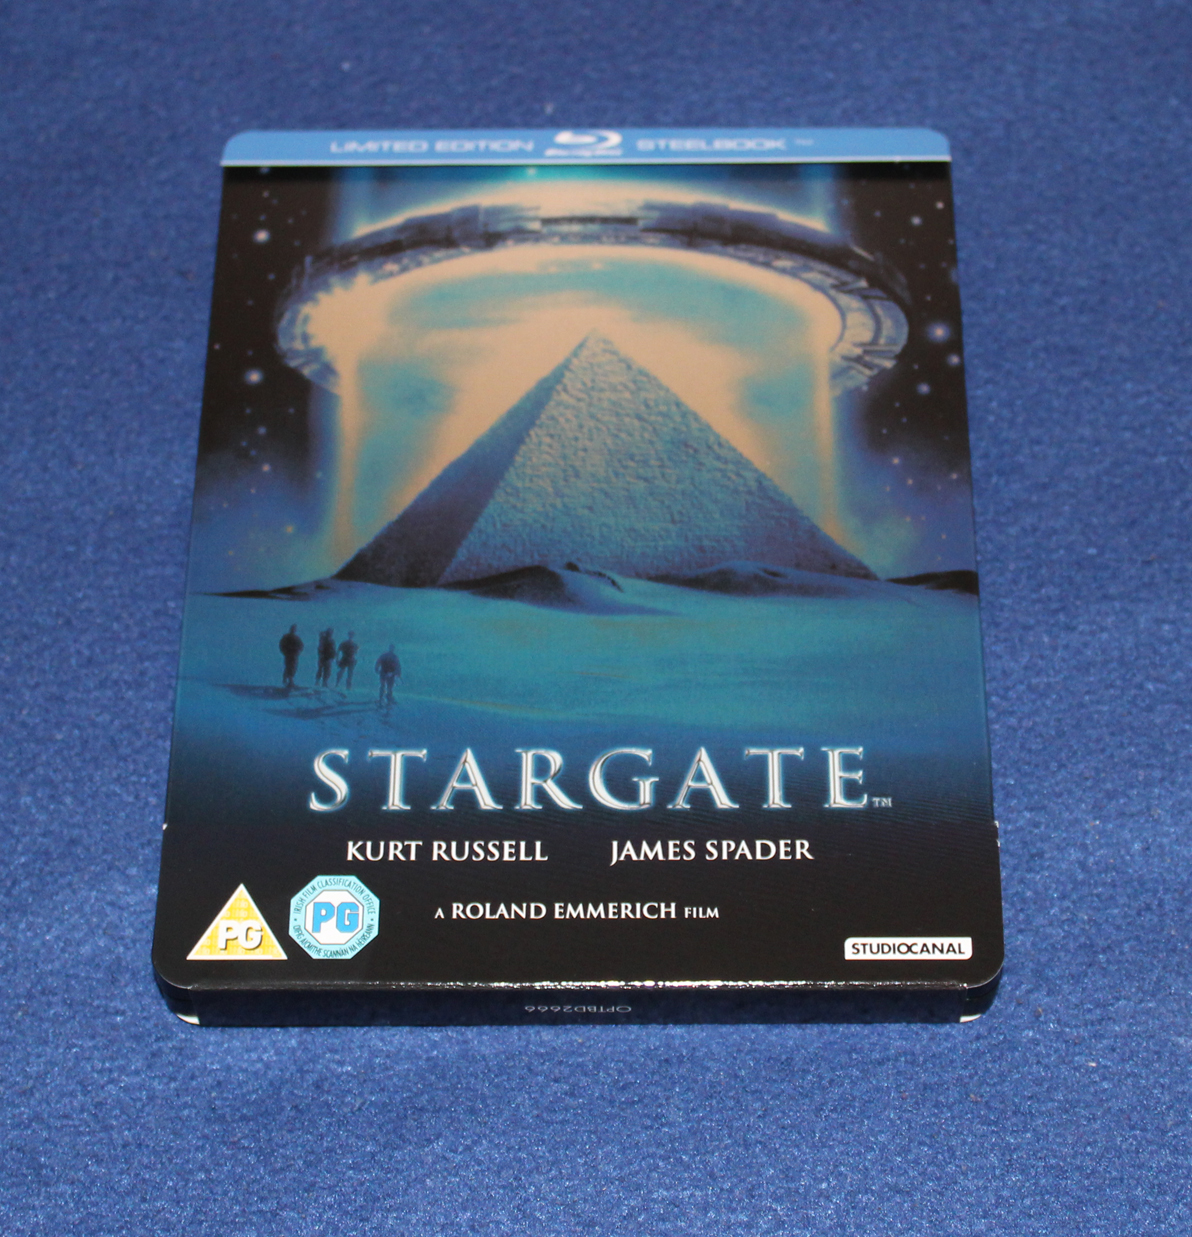 Stargate 20th Anniversary Edition - Exclusive Limited Edition Steelbook - 001